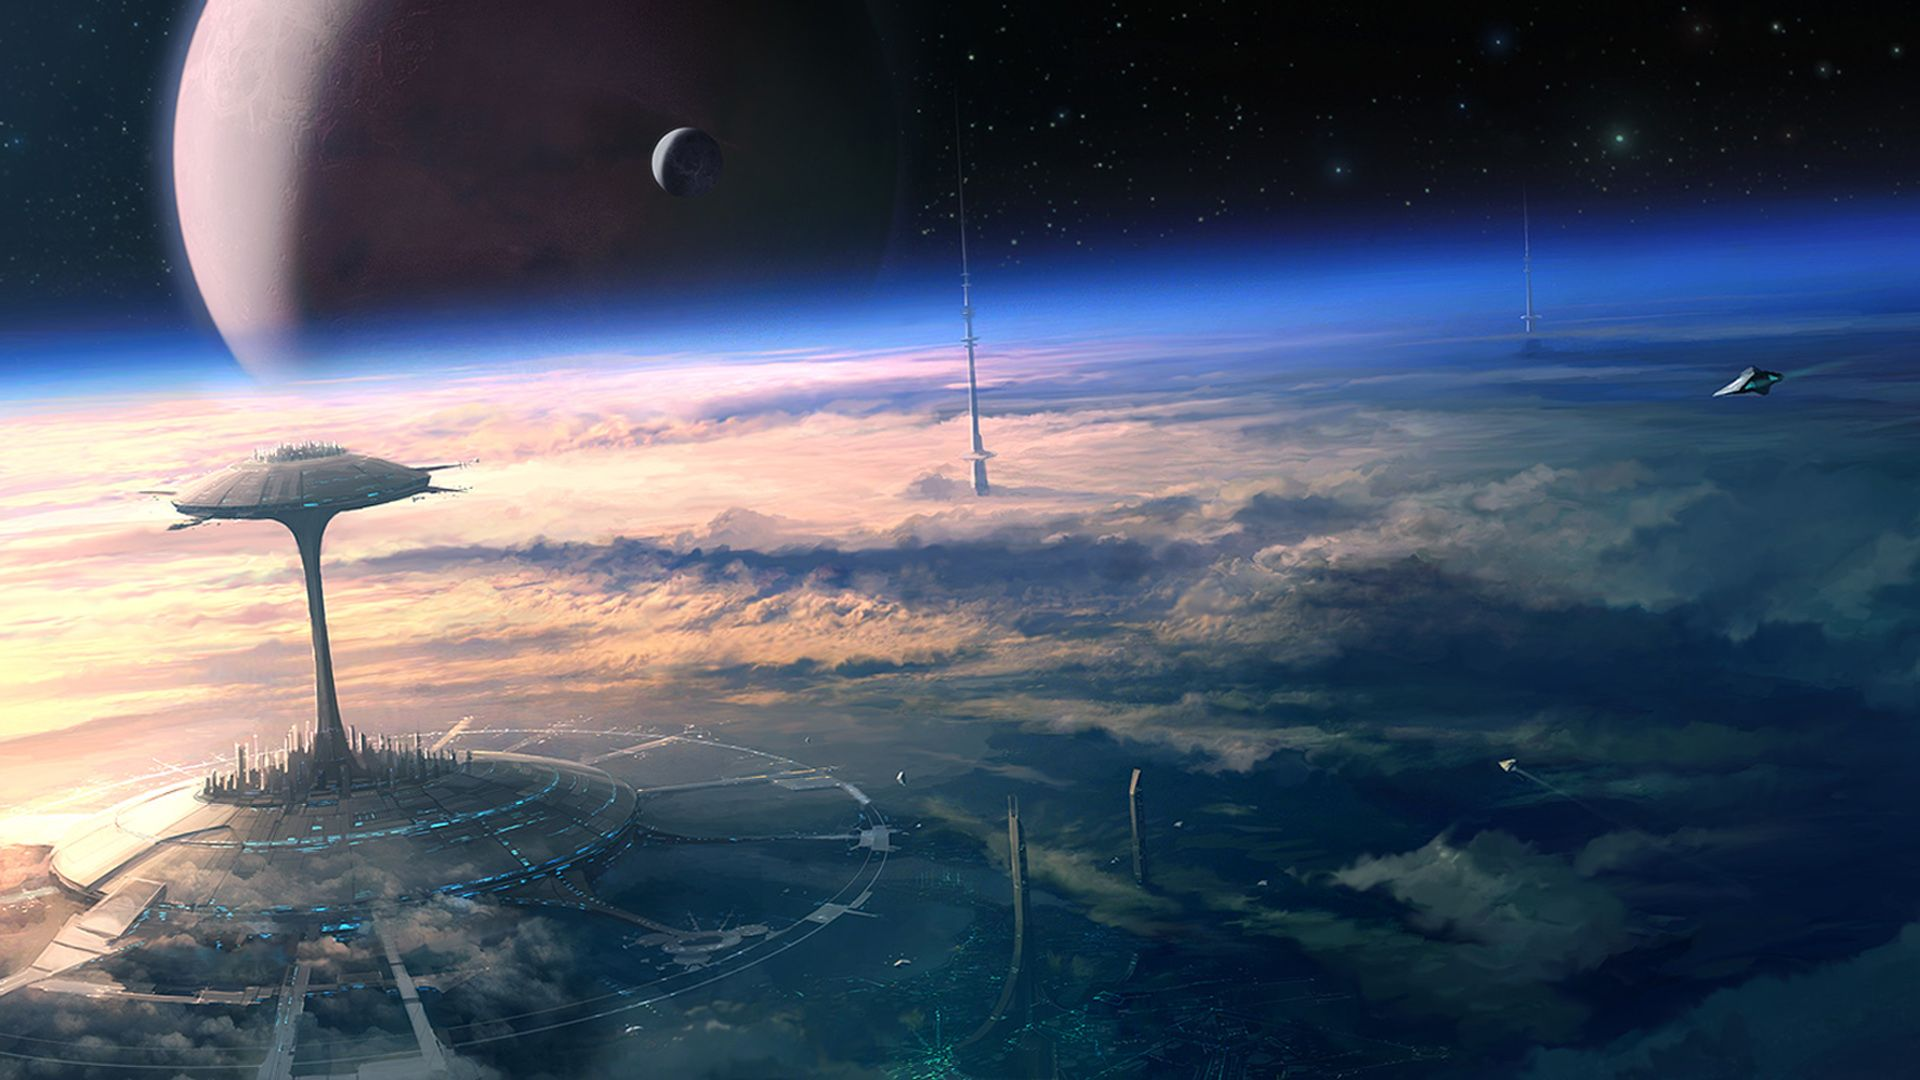 Future Space Wallpapers Top Free Future Space Backgrounds Wallpaperaccess